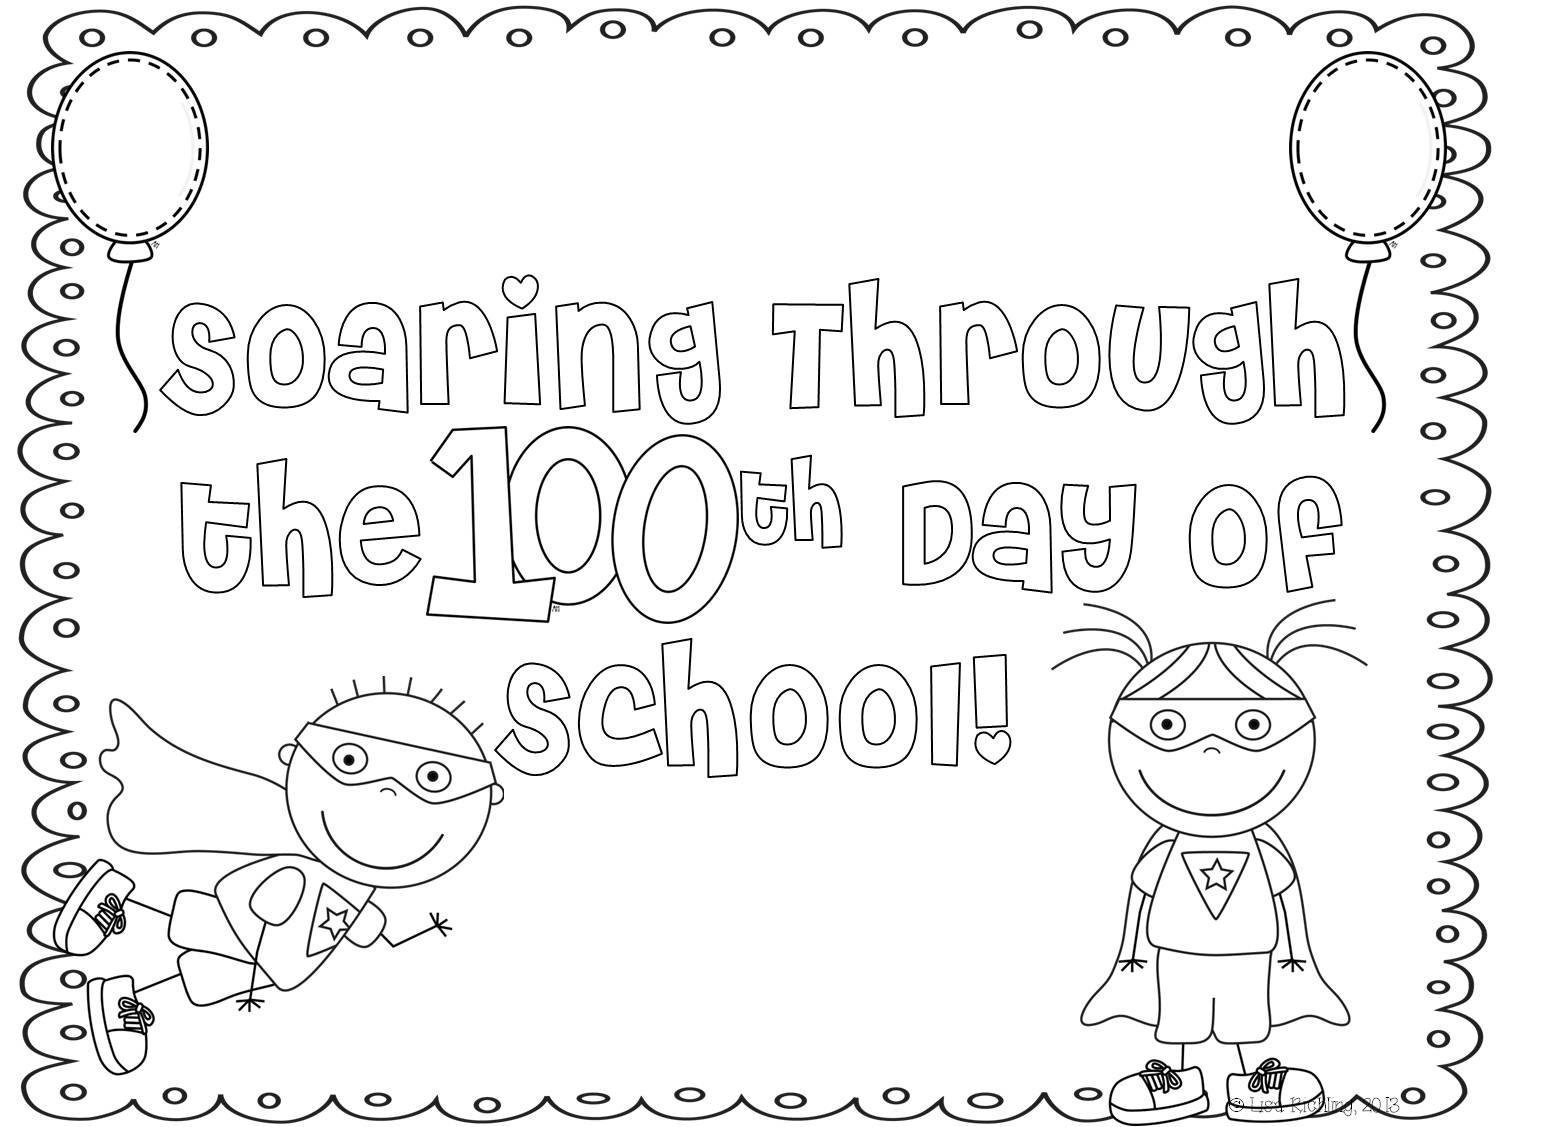 This is an image of Impeccable Coloring Sheets For 100th Day Of School